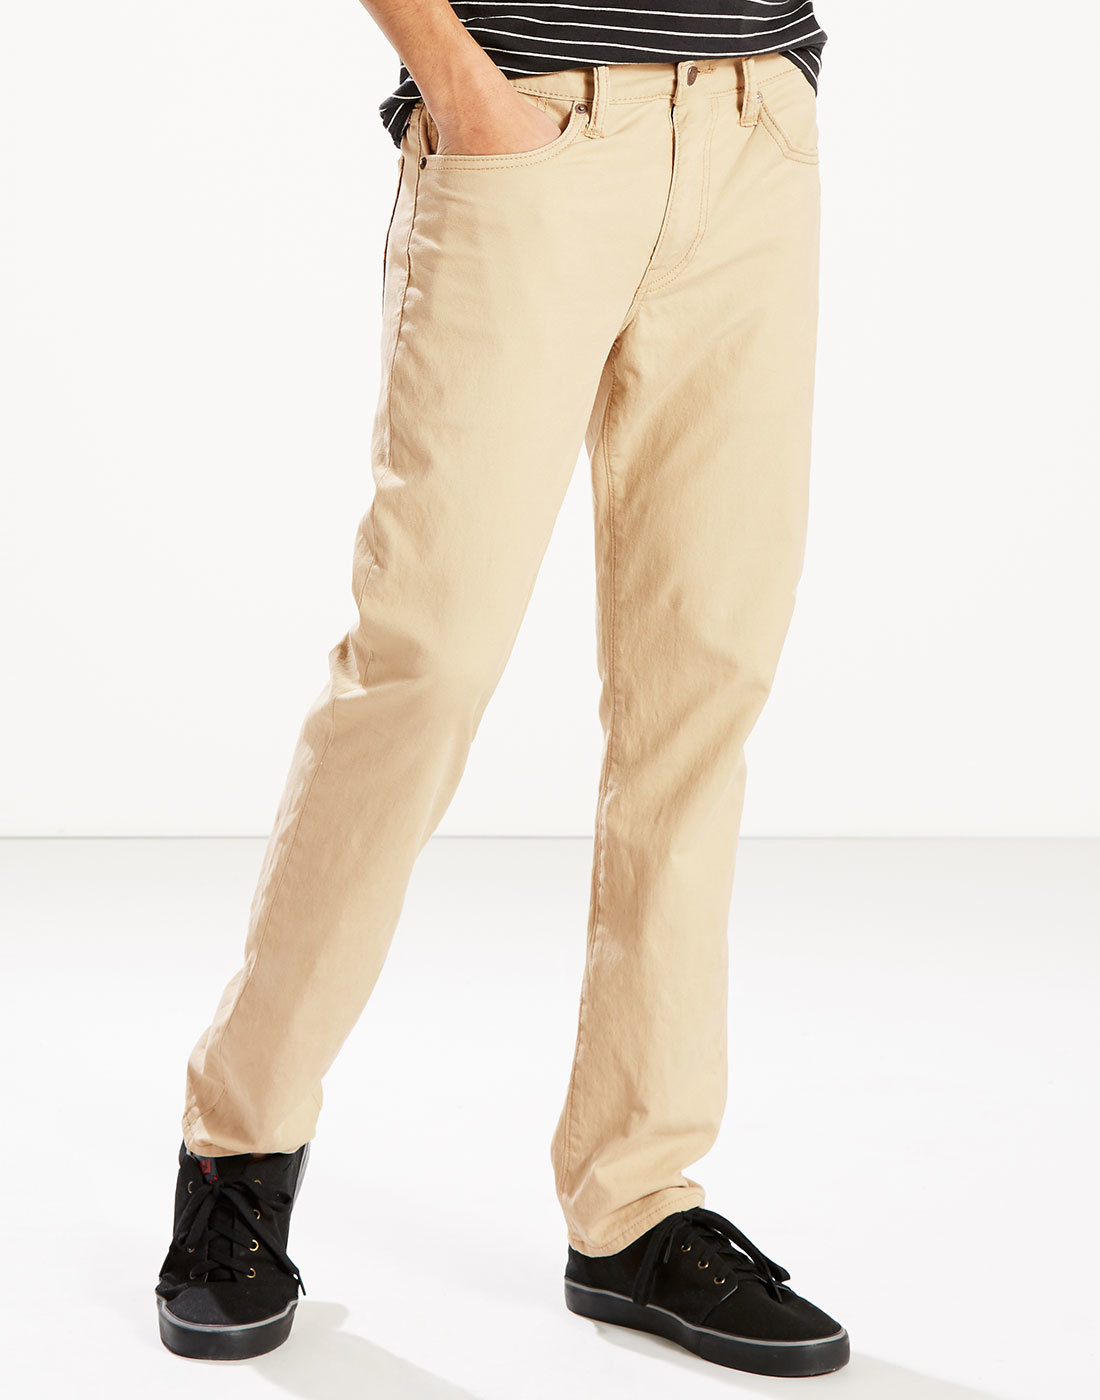 LEVI'S® 511 Men's Retro Linen Mix Slim Jeans SAND